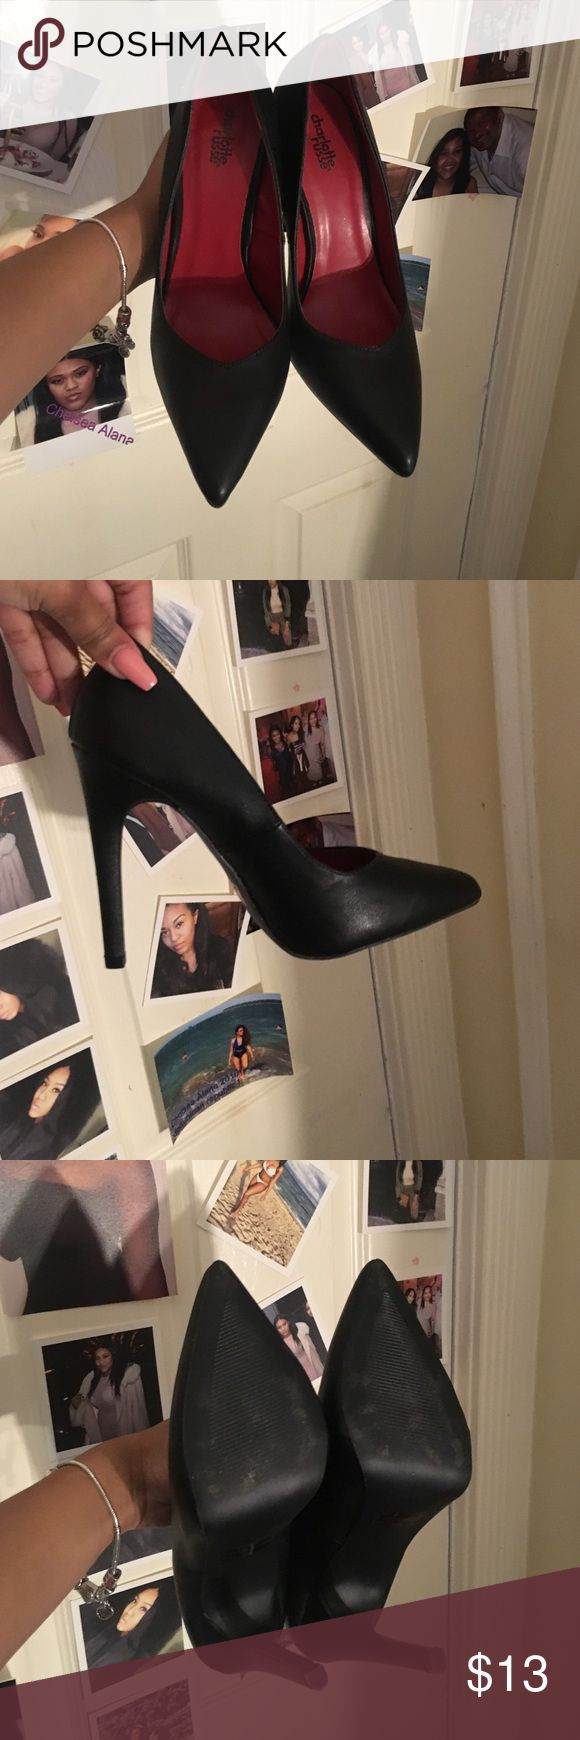 Charlotte Russe All Black Pointy Heels Only worn once to a interview (Got The Job). Perfect condition. Basically new. Charlotte Russe Shoes Heels